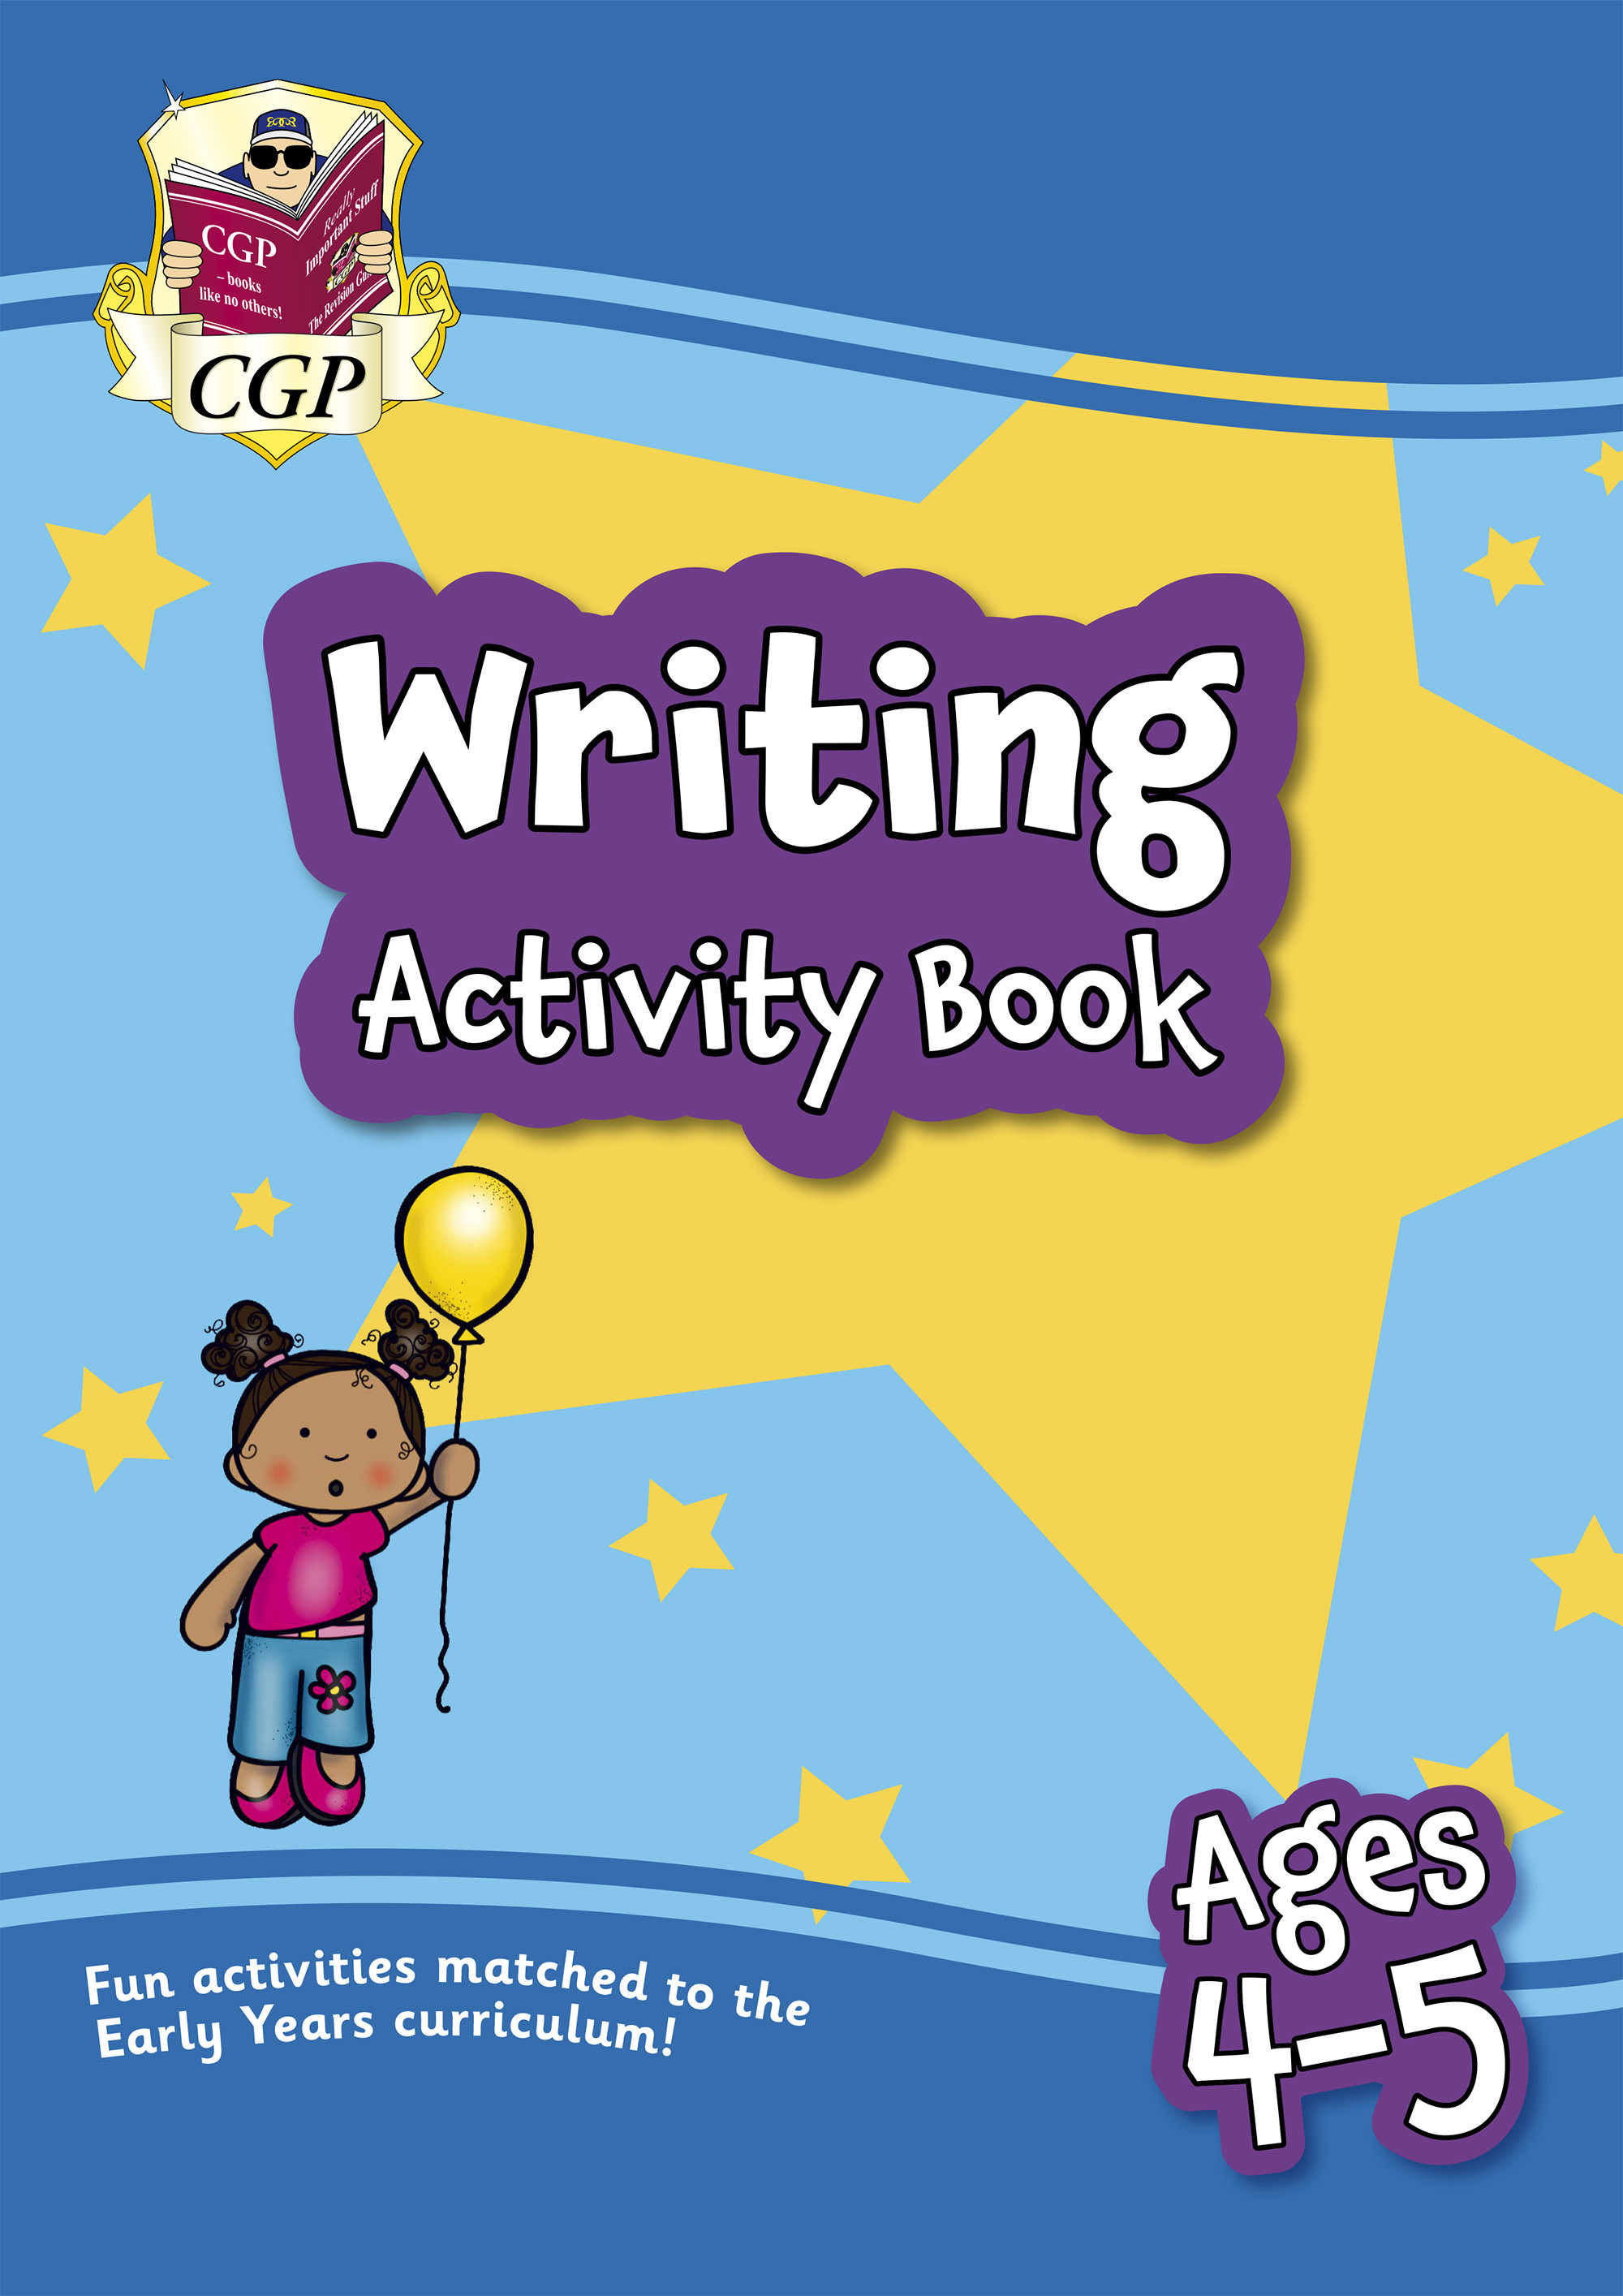 EPFRH01D - New Writing Activity Book for Ages 4-5: Perfect for Catch-Up and Home Learning